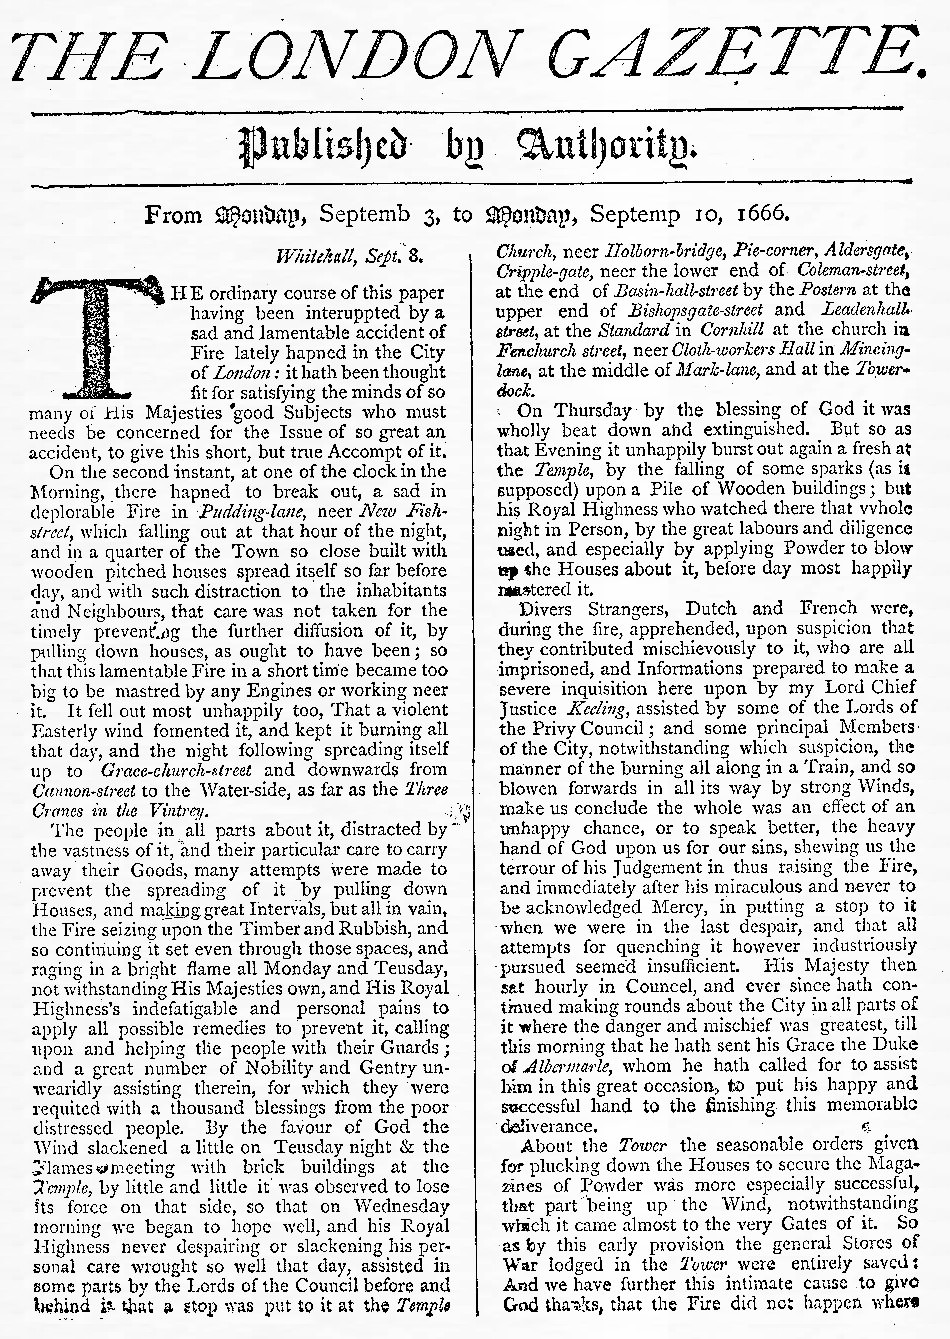 The London Gazette report on the Great Fire of London 1666, page 1